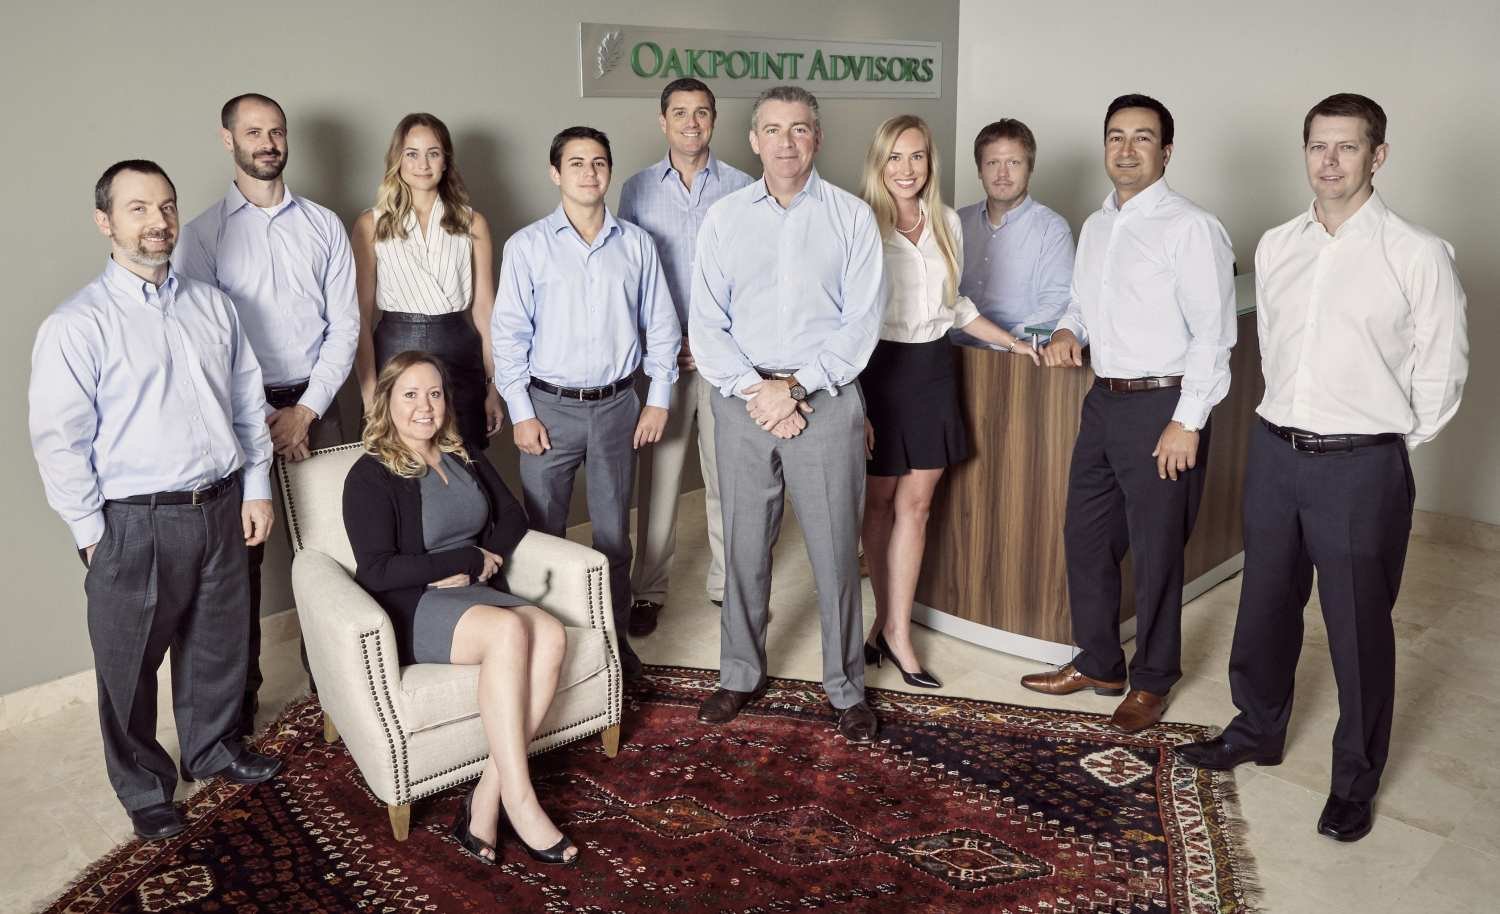 Oakpoint Advisors Group 2017 Coughlin